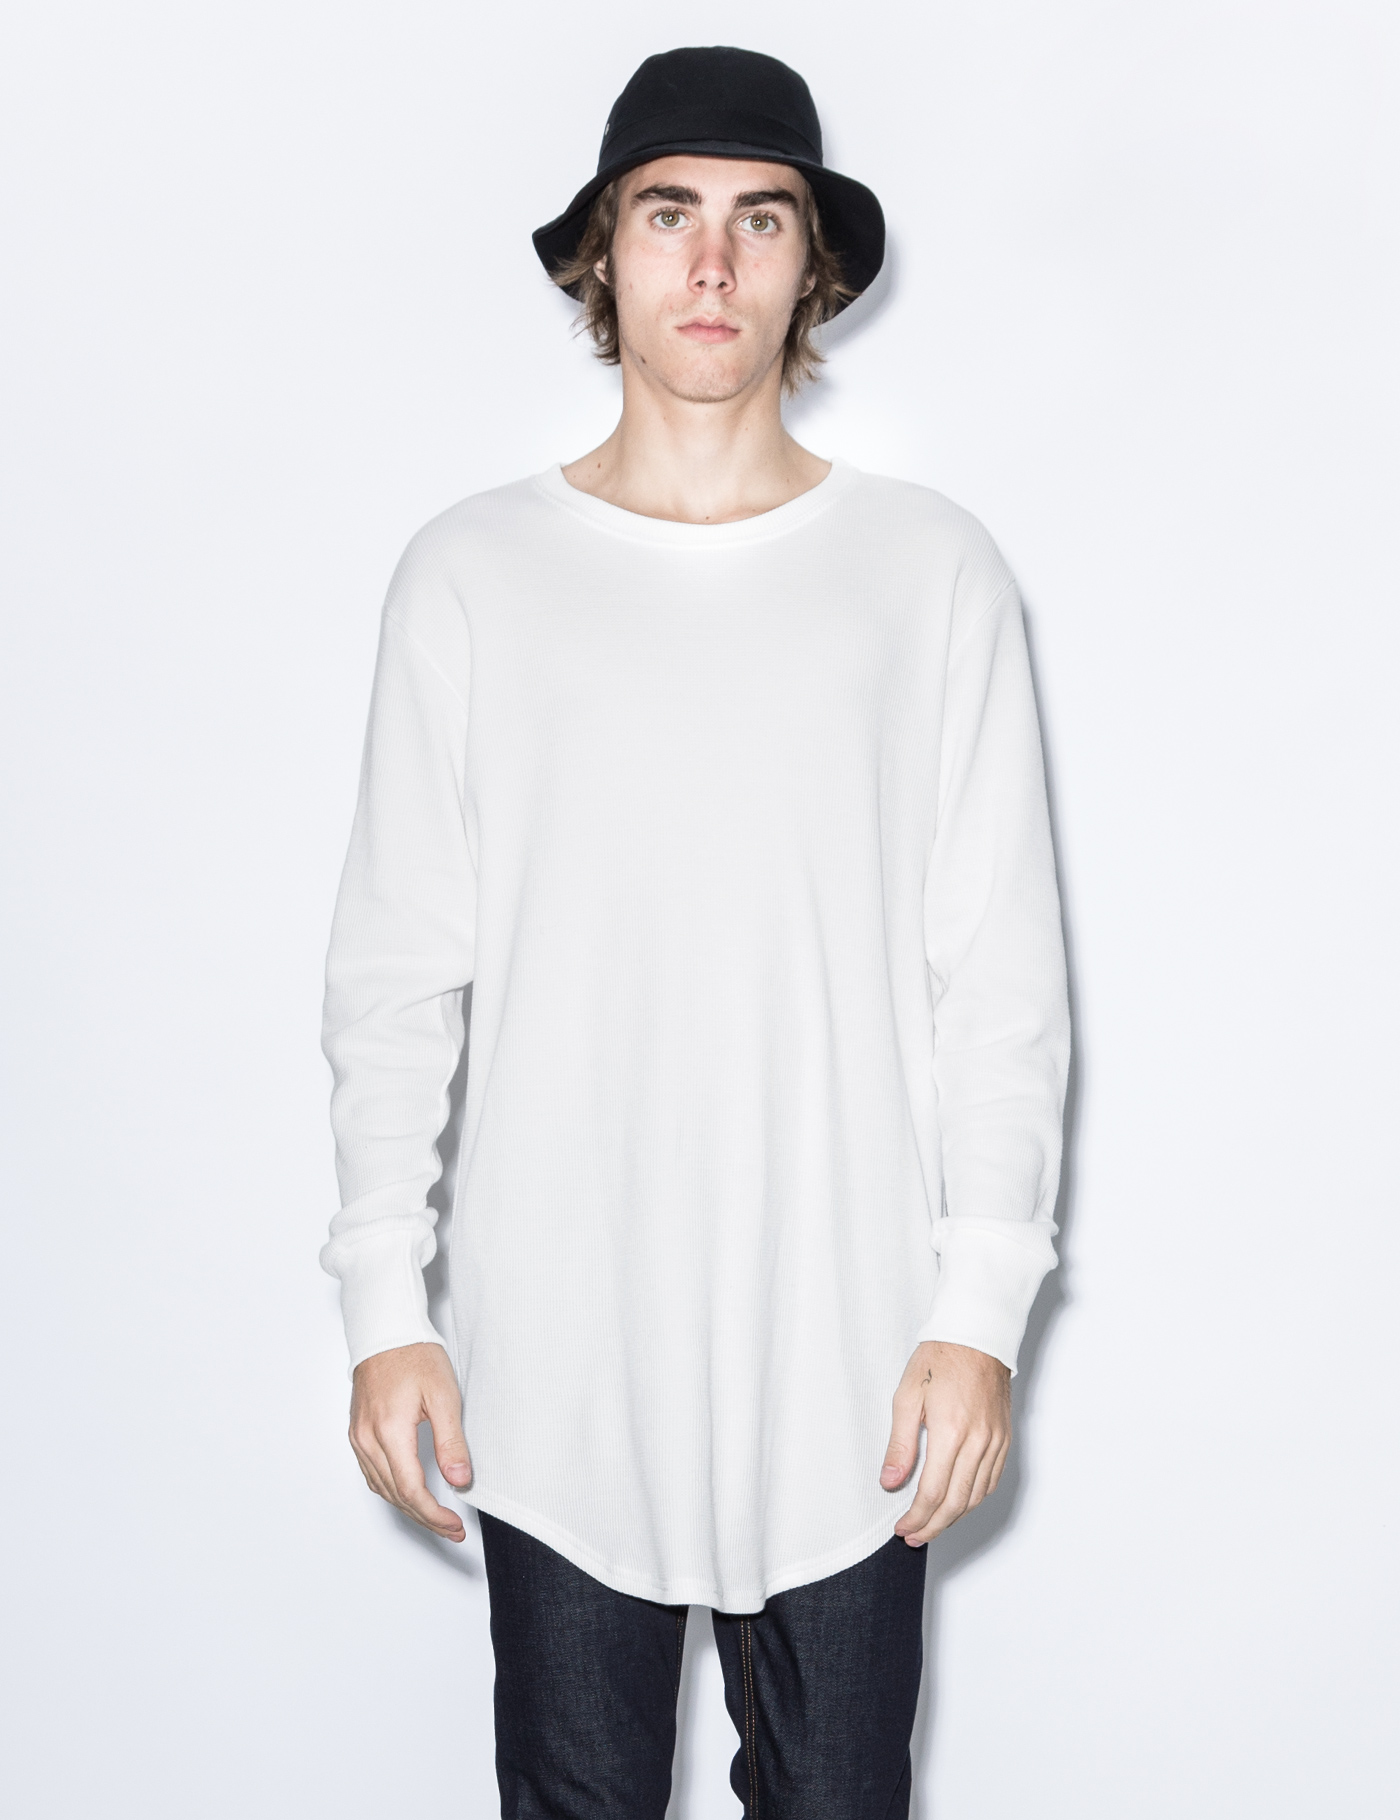 Knyew White Thermal E Long Scoop L S T Shirt Hbx